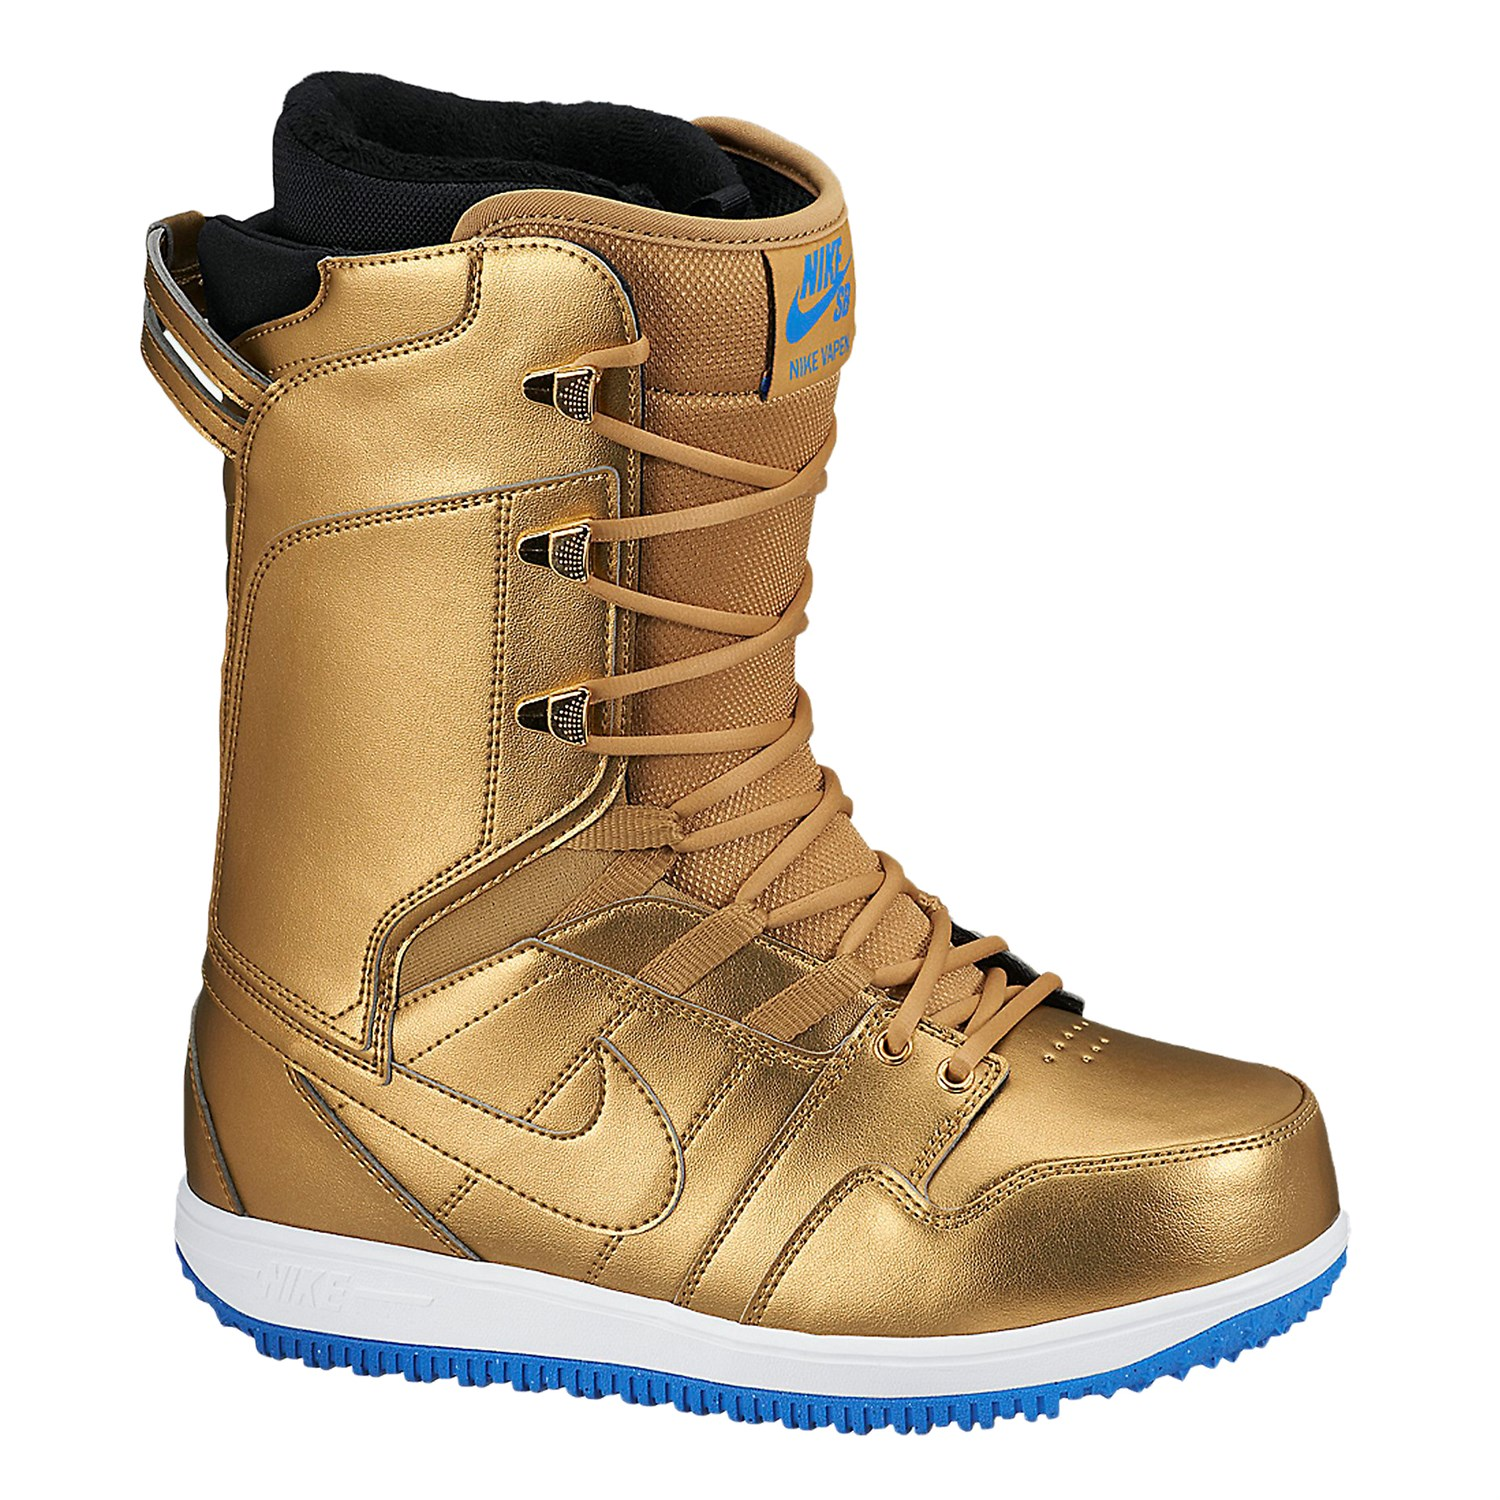 Cool Read Customer Product Nike SB Vapen Boa Snowboard Boots  Womens 2014  For Great Deals With Need To Buy Nike SB Vapen Boa Snowboard Boots  Womens 2014 Nike SB Vapen Boa Snowboard Boots  Womens 2014